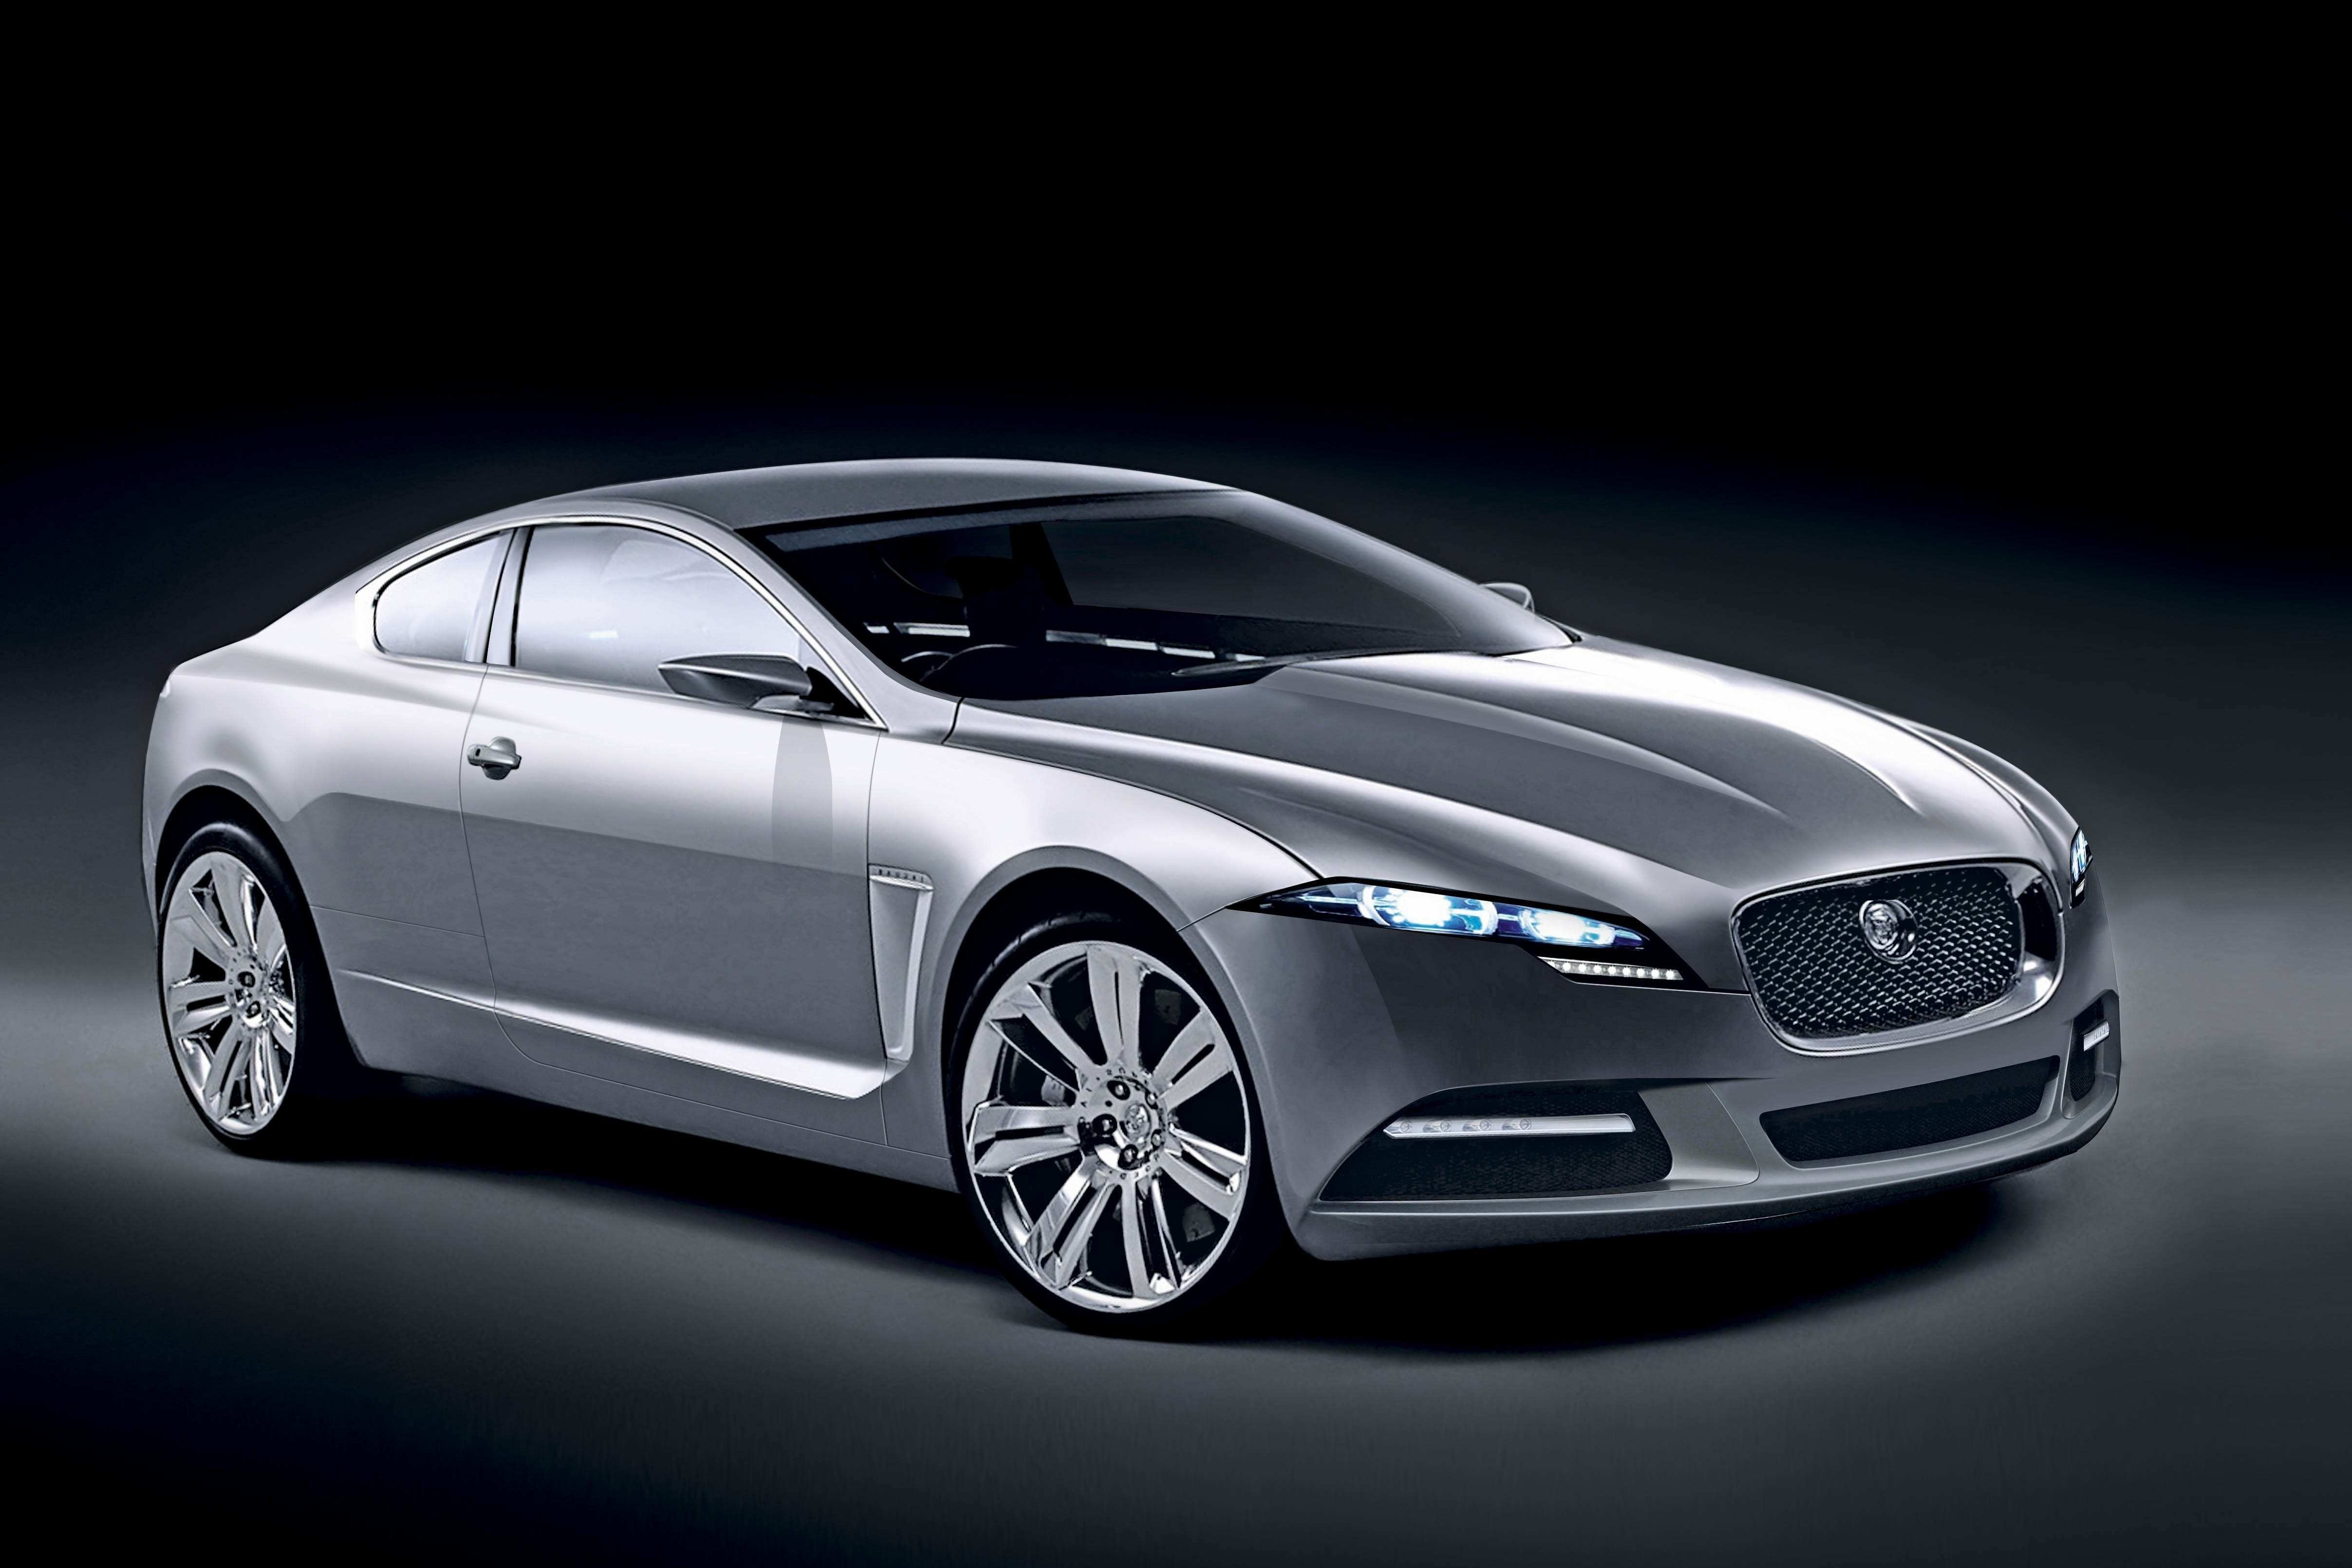 66 Gallery of 2019 Jaguar Xj Concept Price and Review with 2019 Jaguar Xj Concept